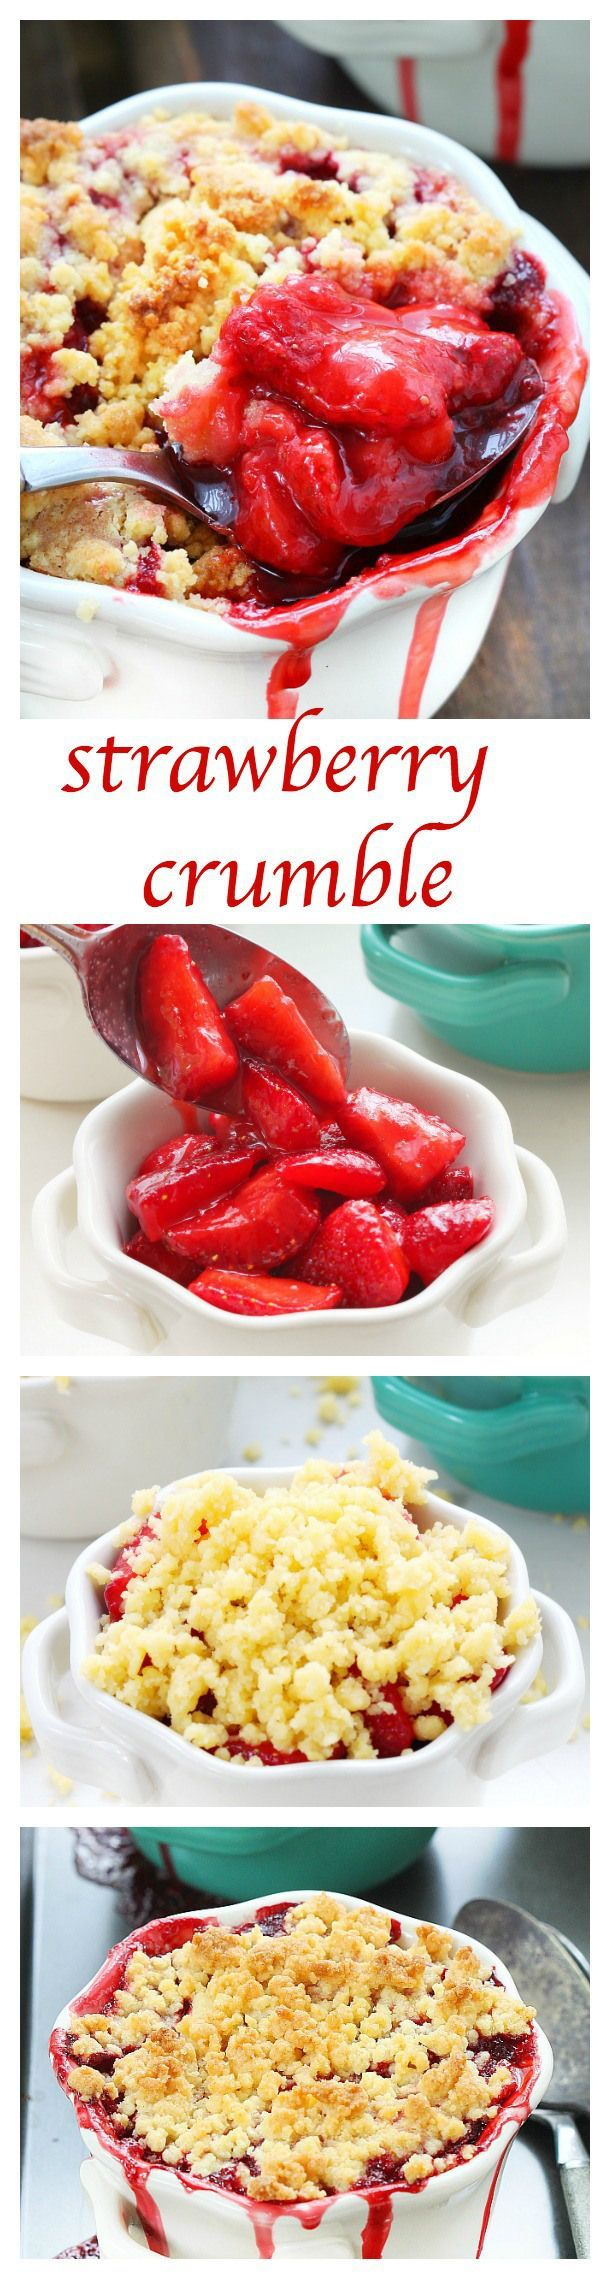 strawberry crumble Juicy fresh strawberries and a buttery topping make this strawberry crumble one of my favorite summer desserts!! Simple ingredients and only 5 minutes of prep time, I'll be making this over and over again, all summer long!Juicy fresh strawberries and a buttery topping make this strawberry crumble one of my favorite su...